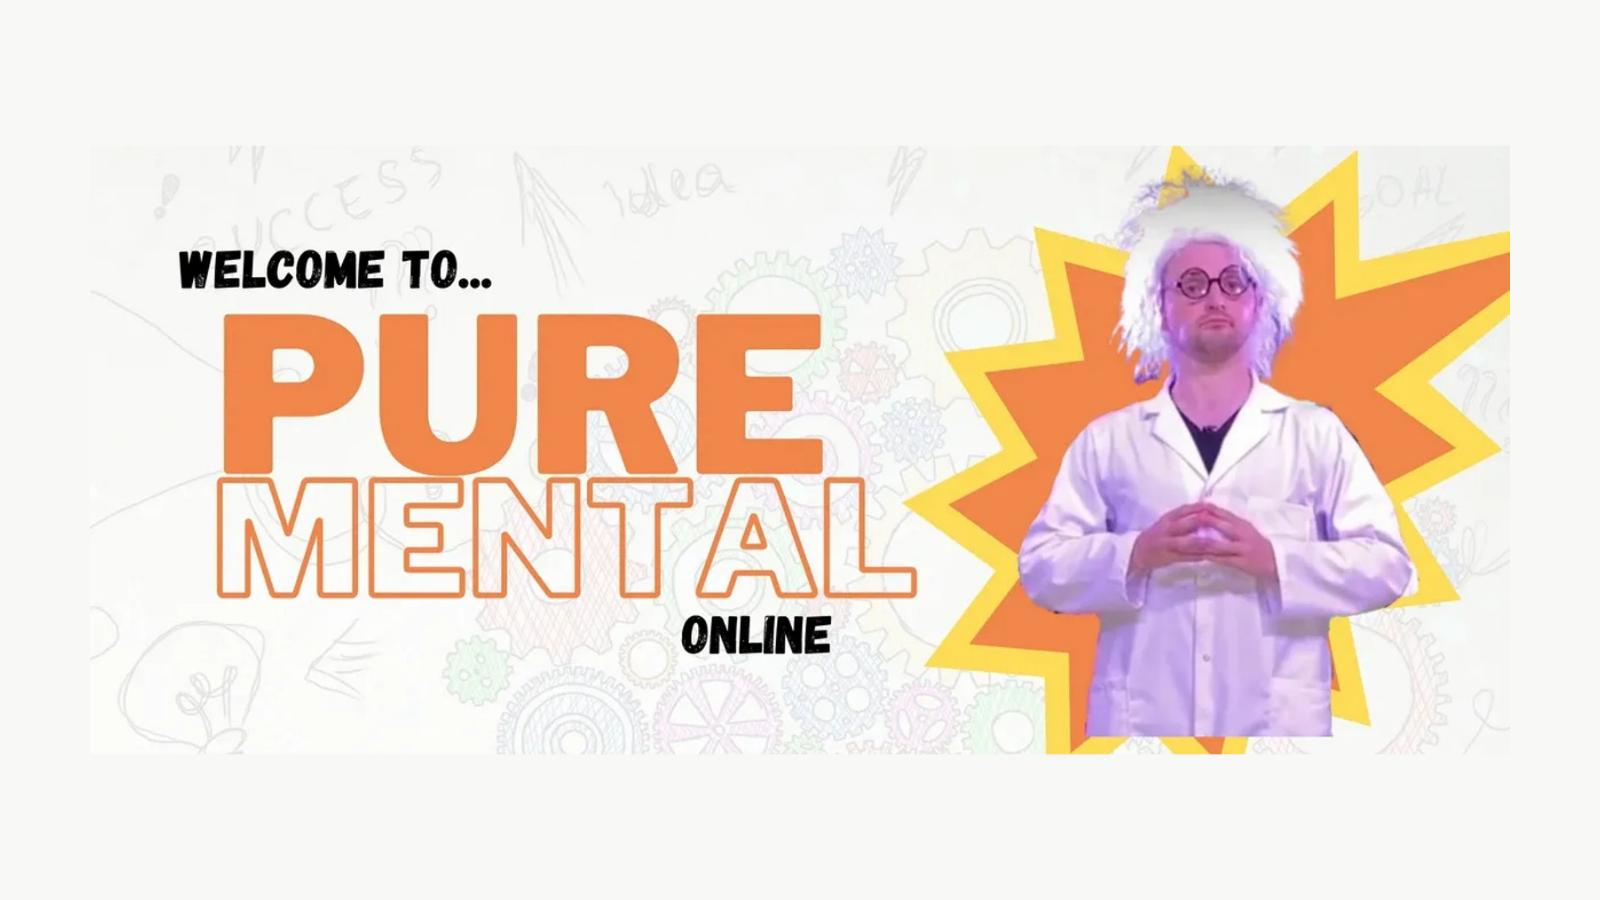 'Pure Mental' - Online Mental Health Resources for Young People